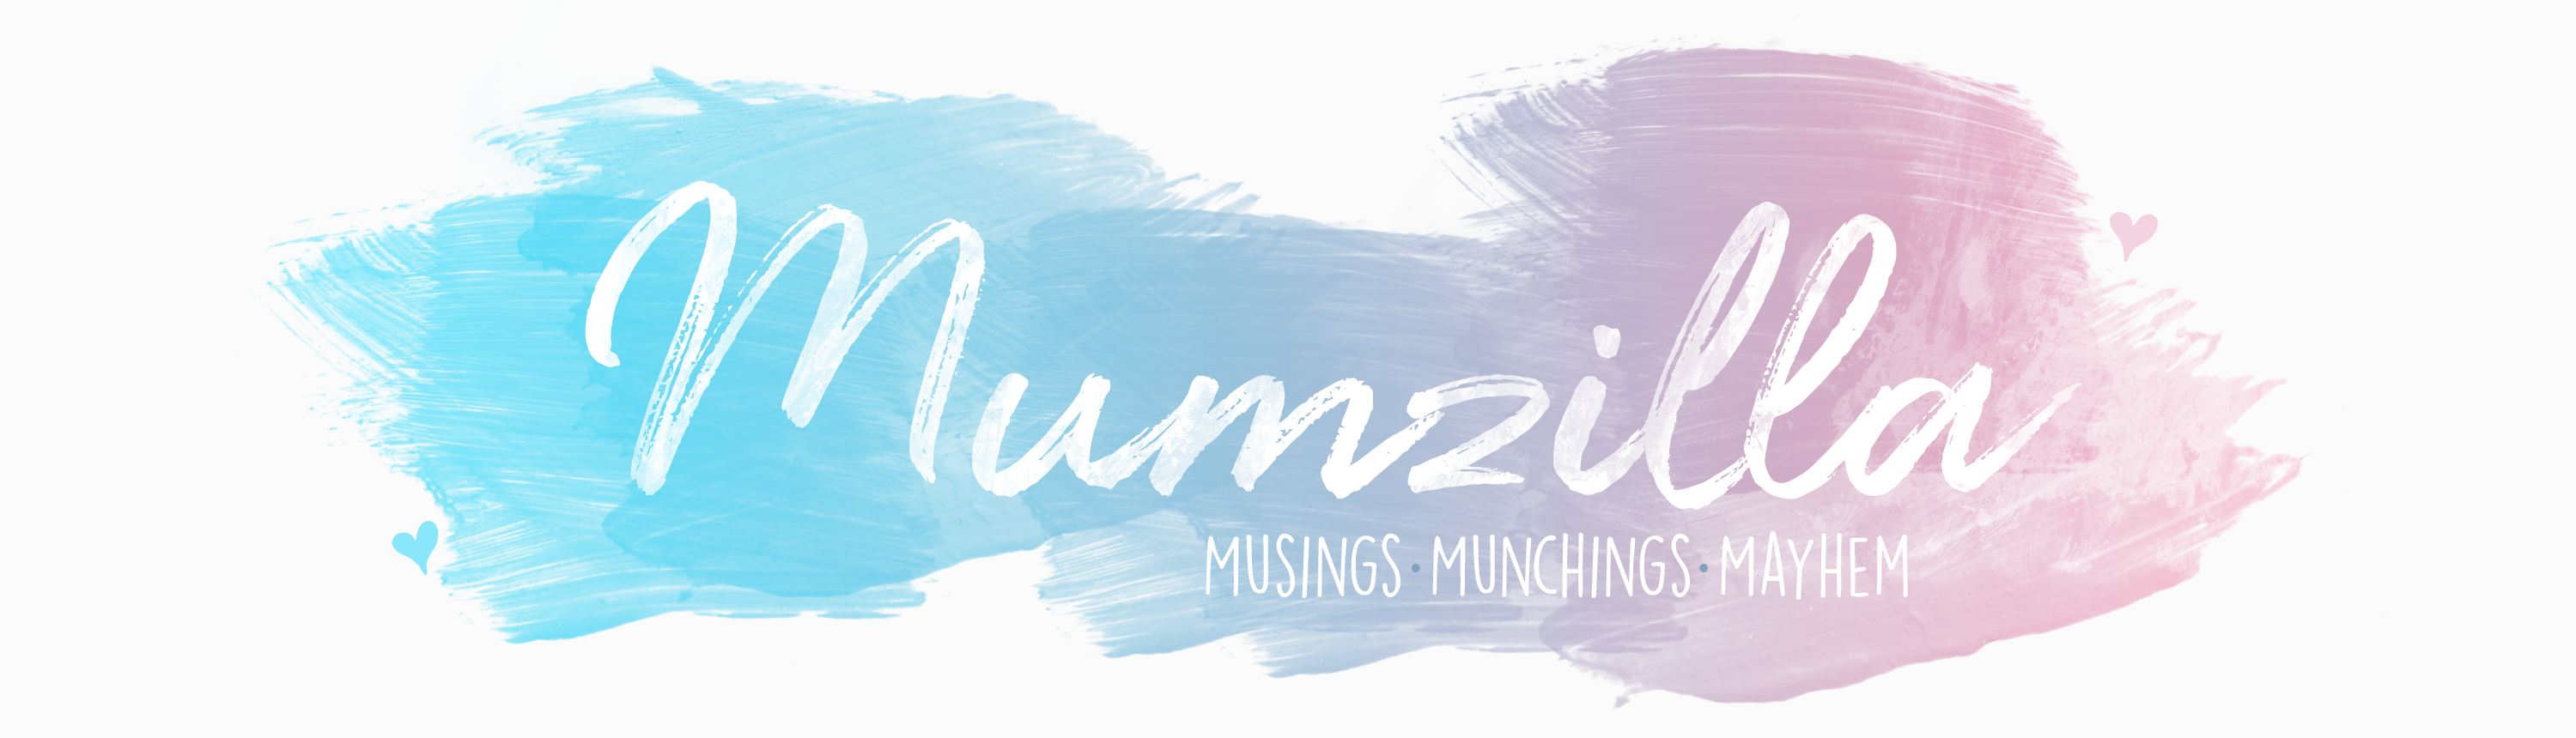 Mumzilla - Musings, munching, mayhem